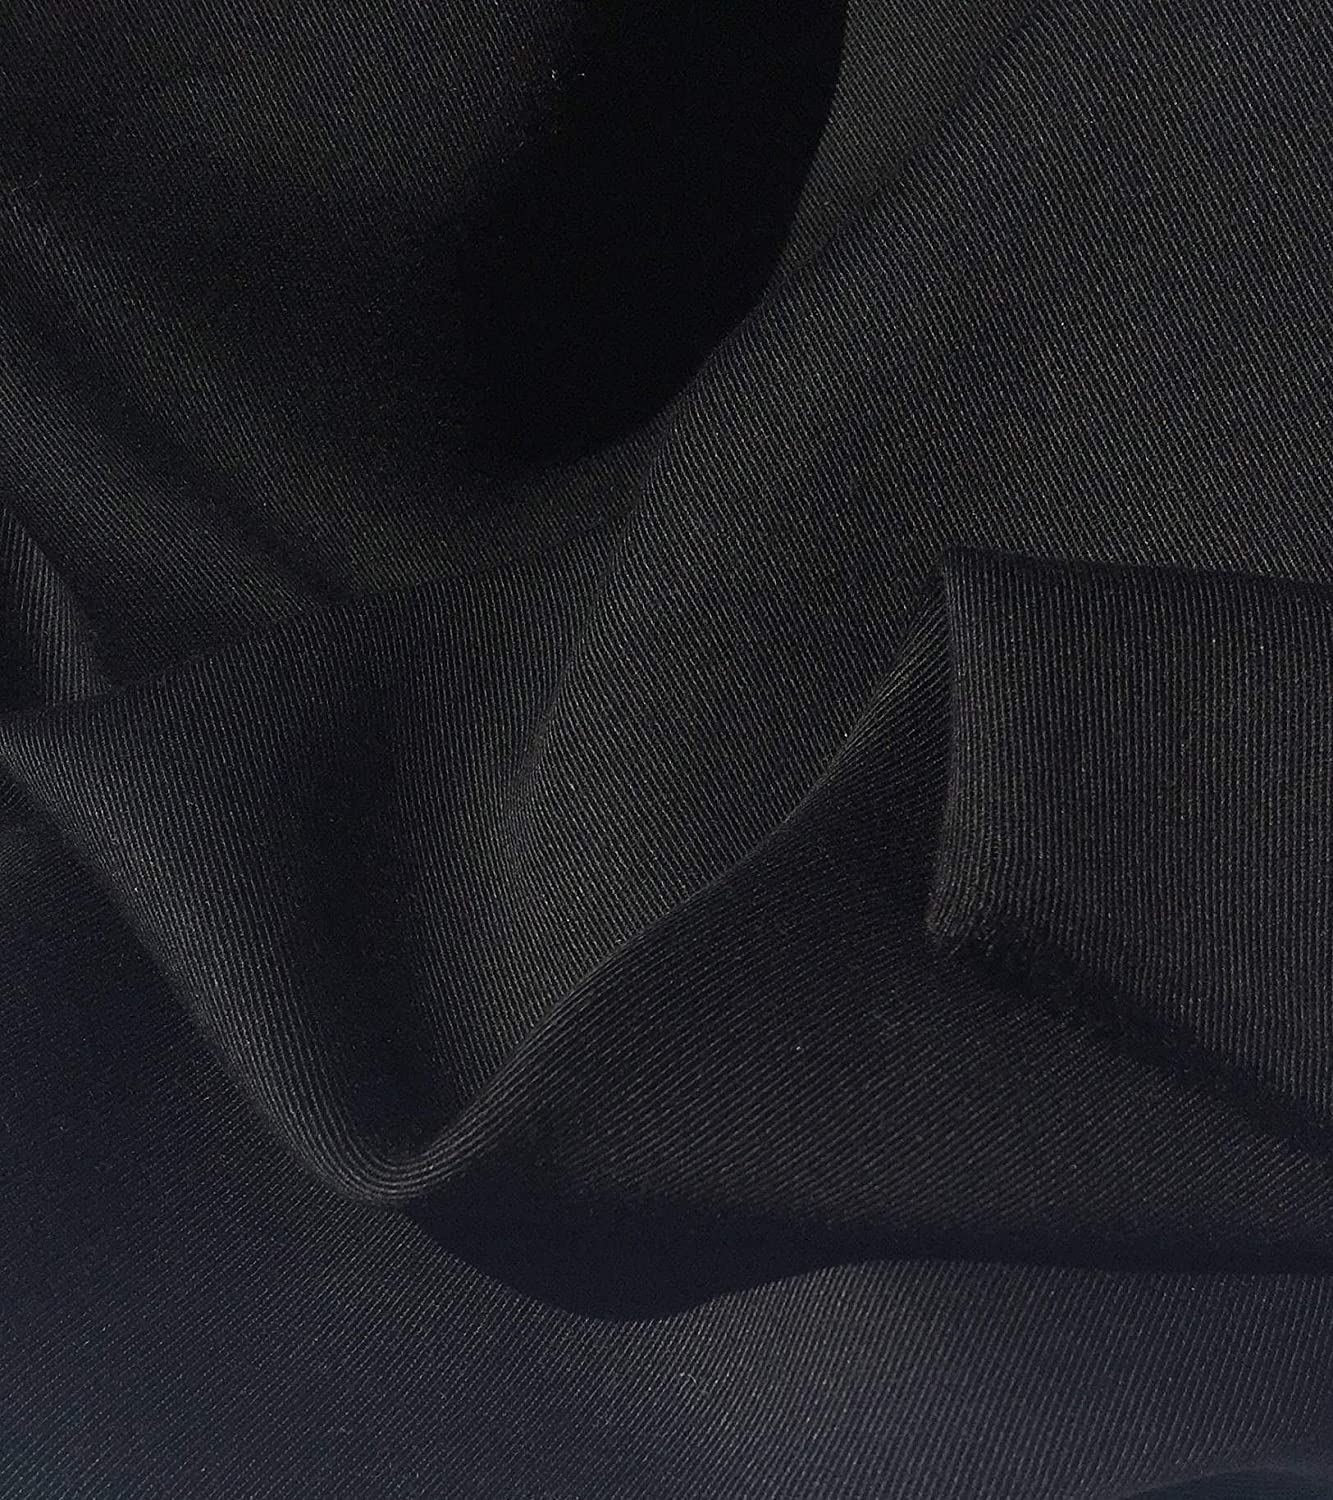 "60/"" Jet Black 100/% Lyocell Tencel Gabardine Twill Eco Friendly Medium Weight Wov"